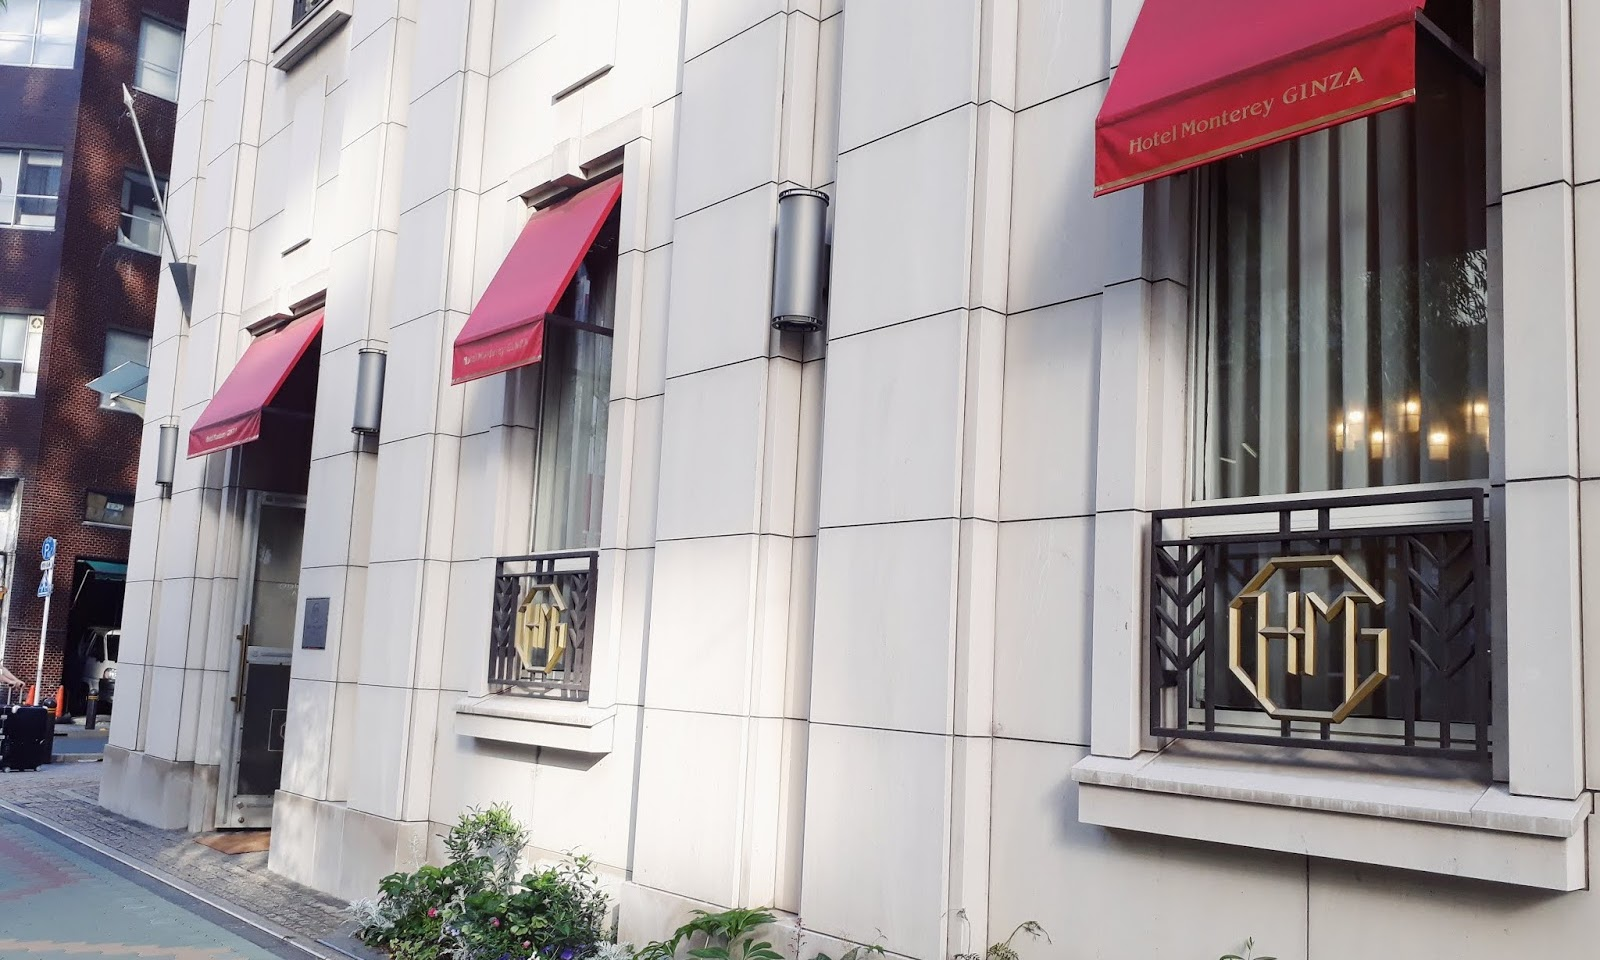 monterey hotel ginza review